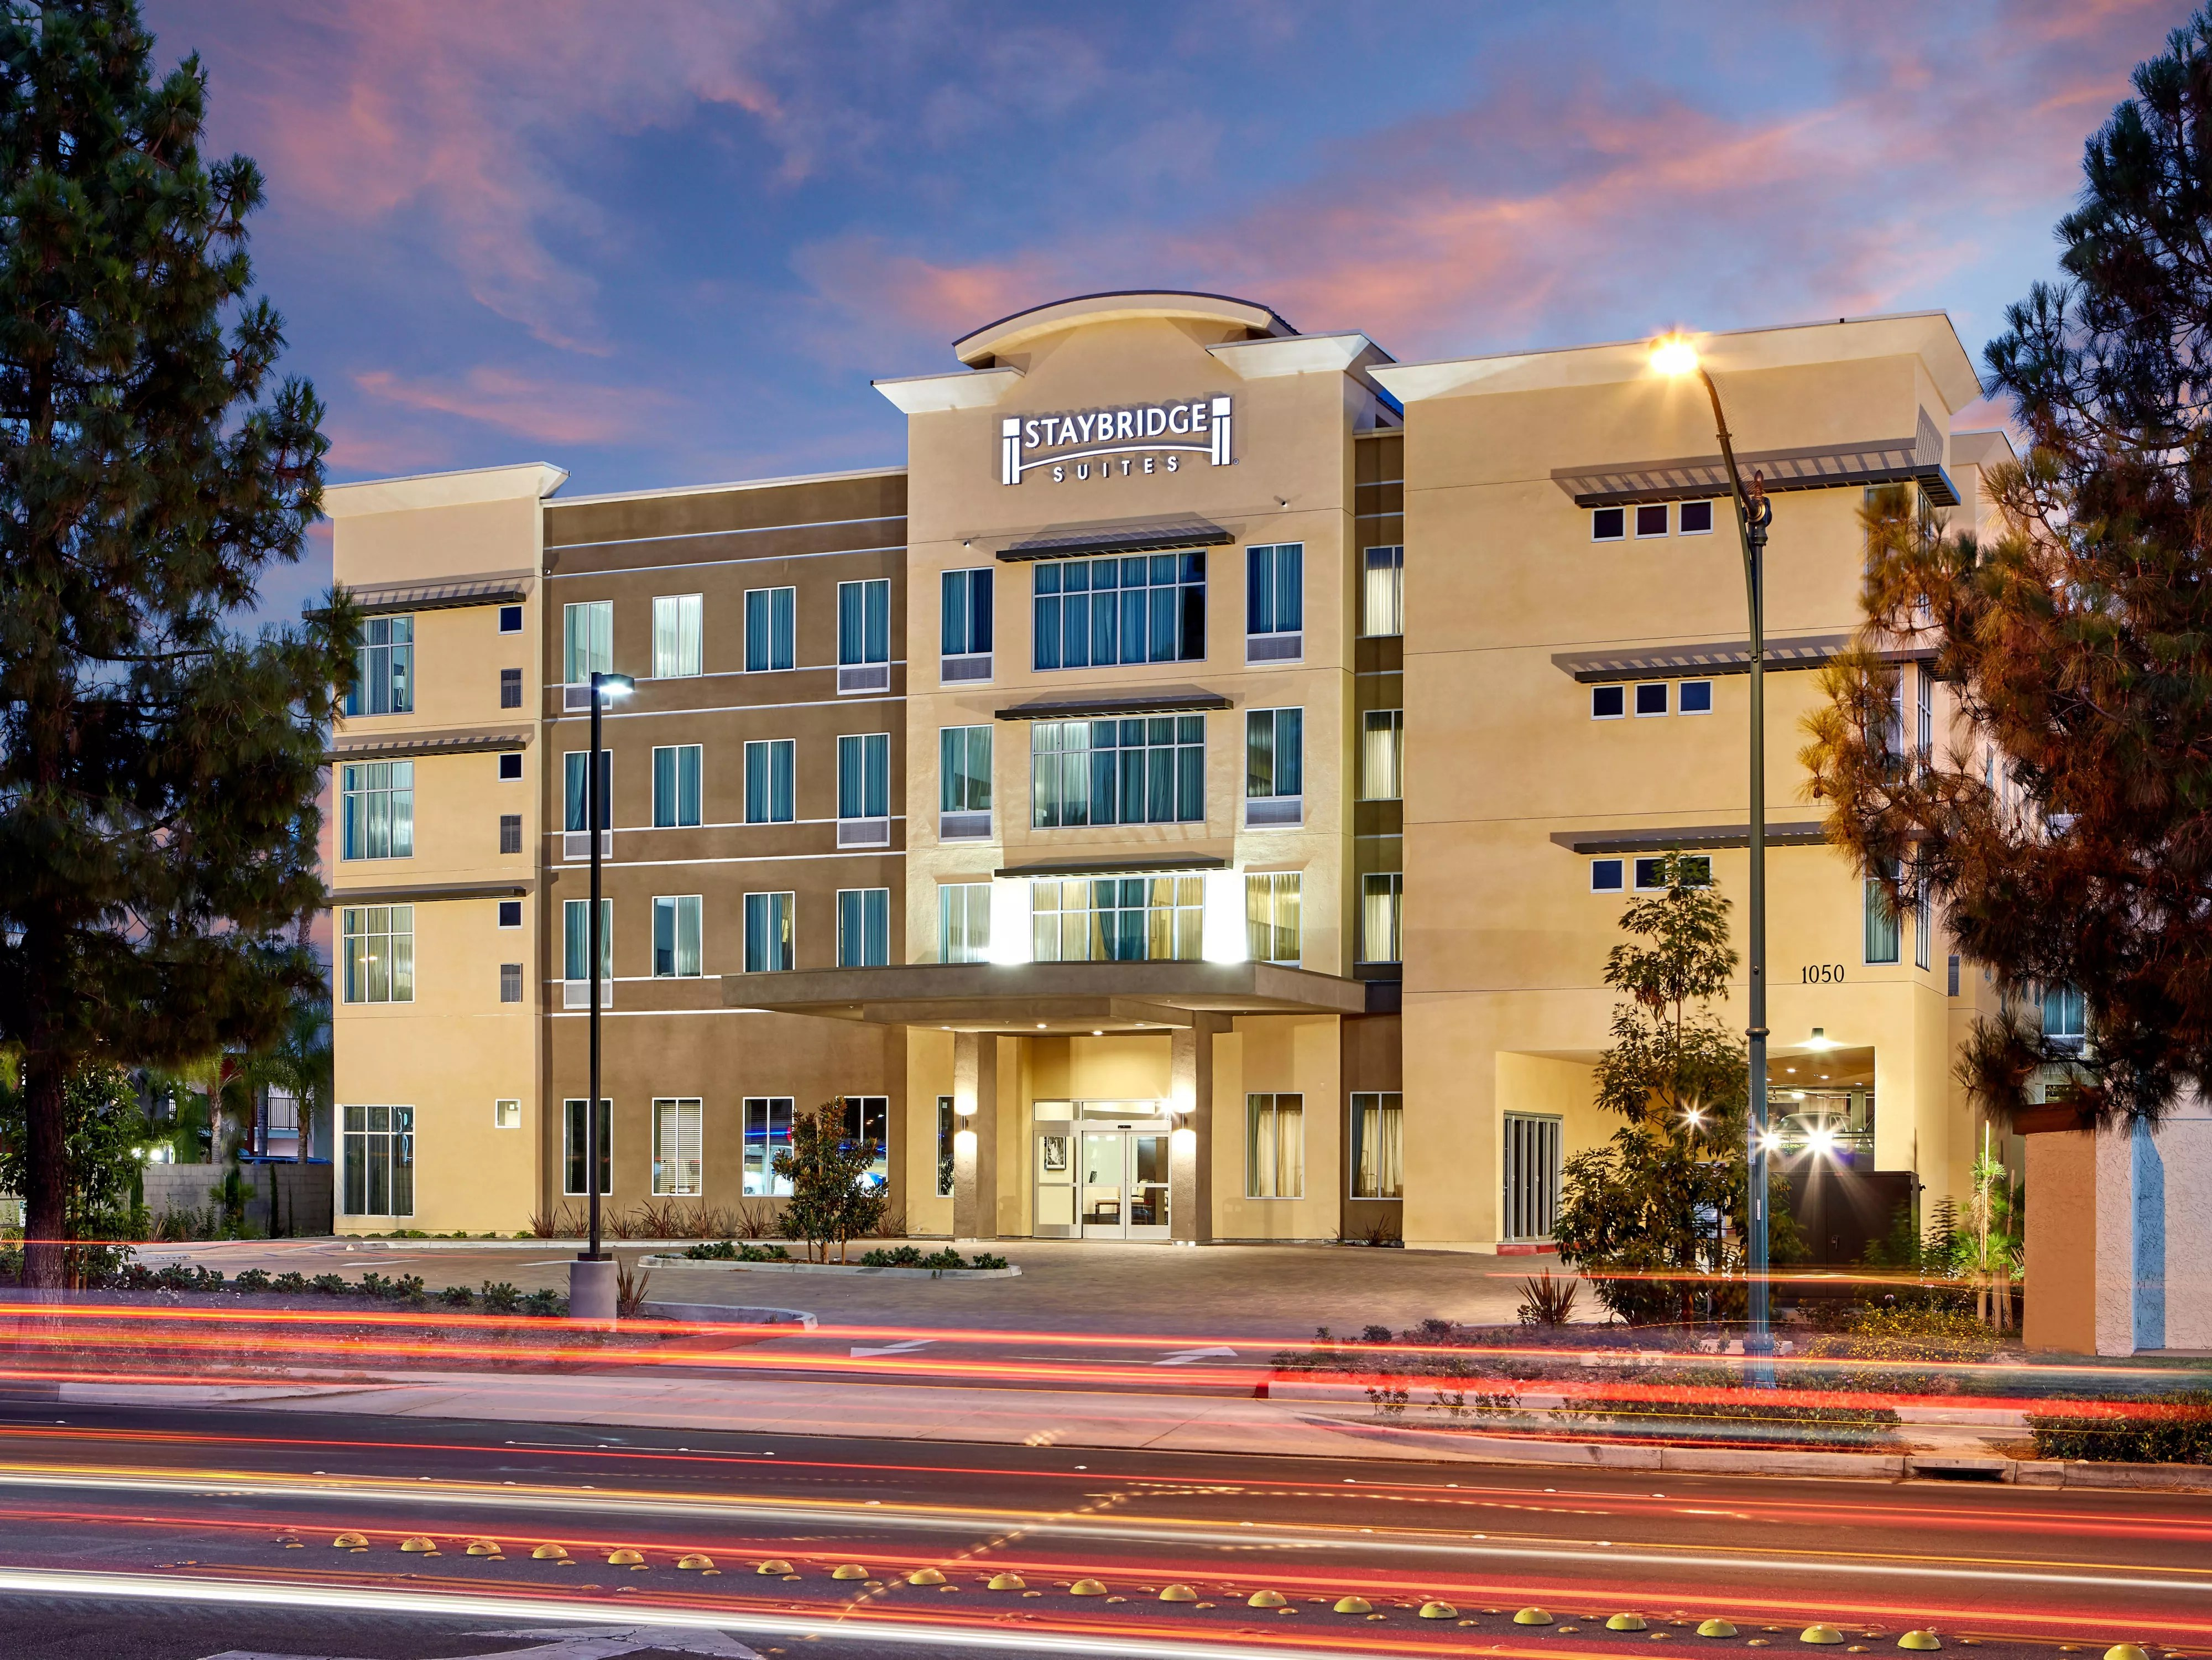 anaheim hotels with kitchen near disneyland tiny table staybridge suites at the park extended stay